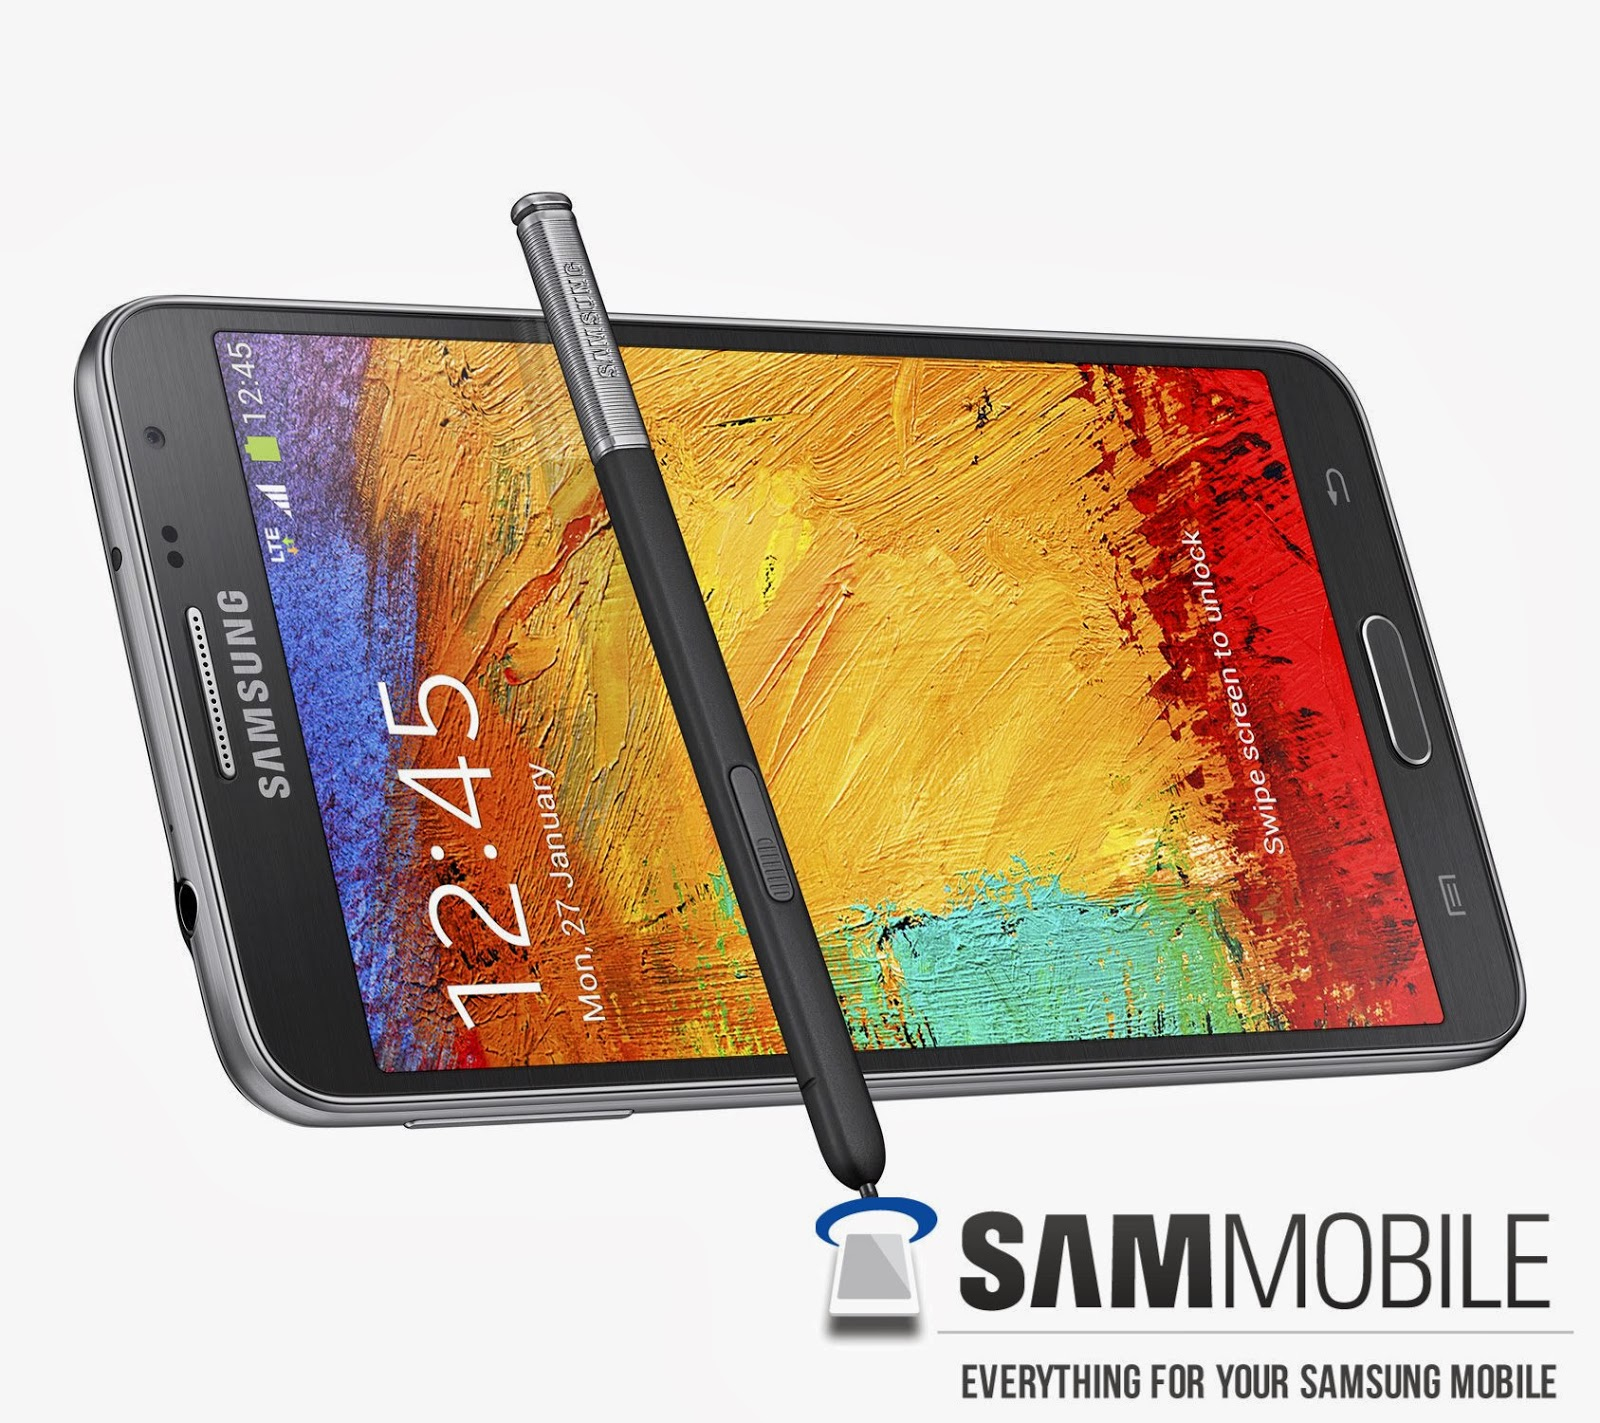 Samsung Galaxy Note 3 Neo Leaked